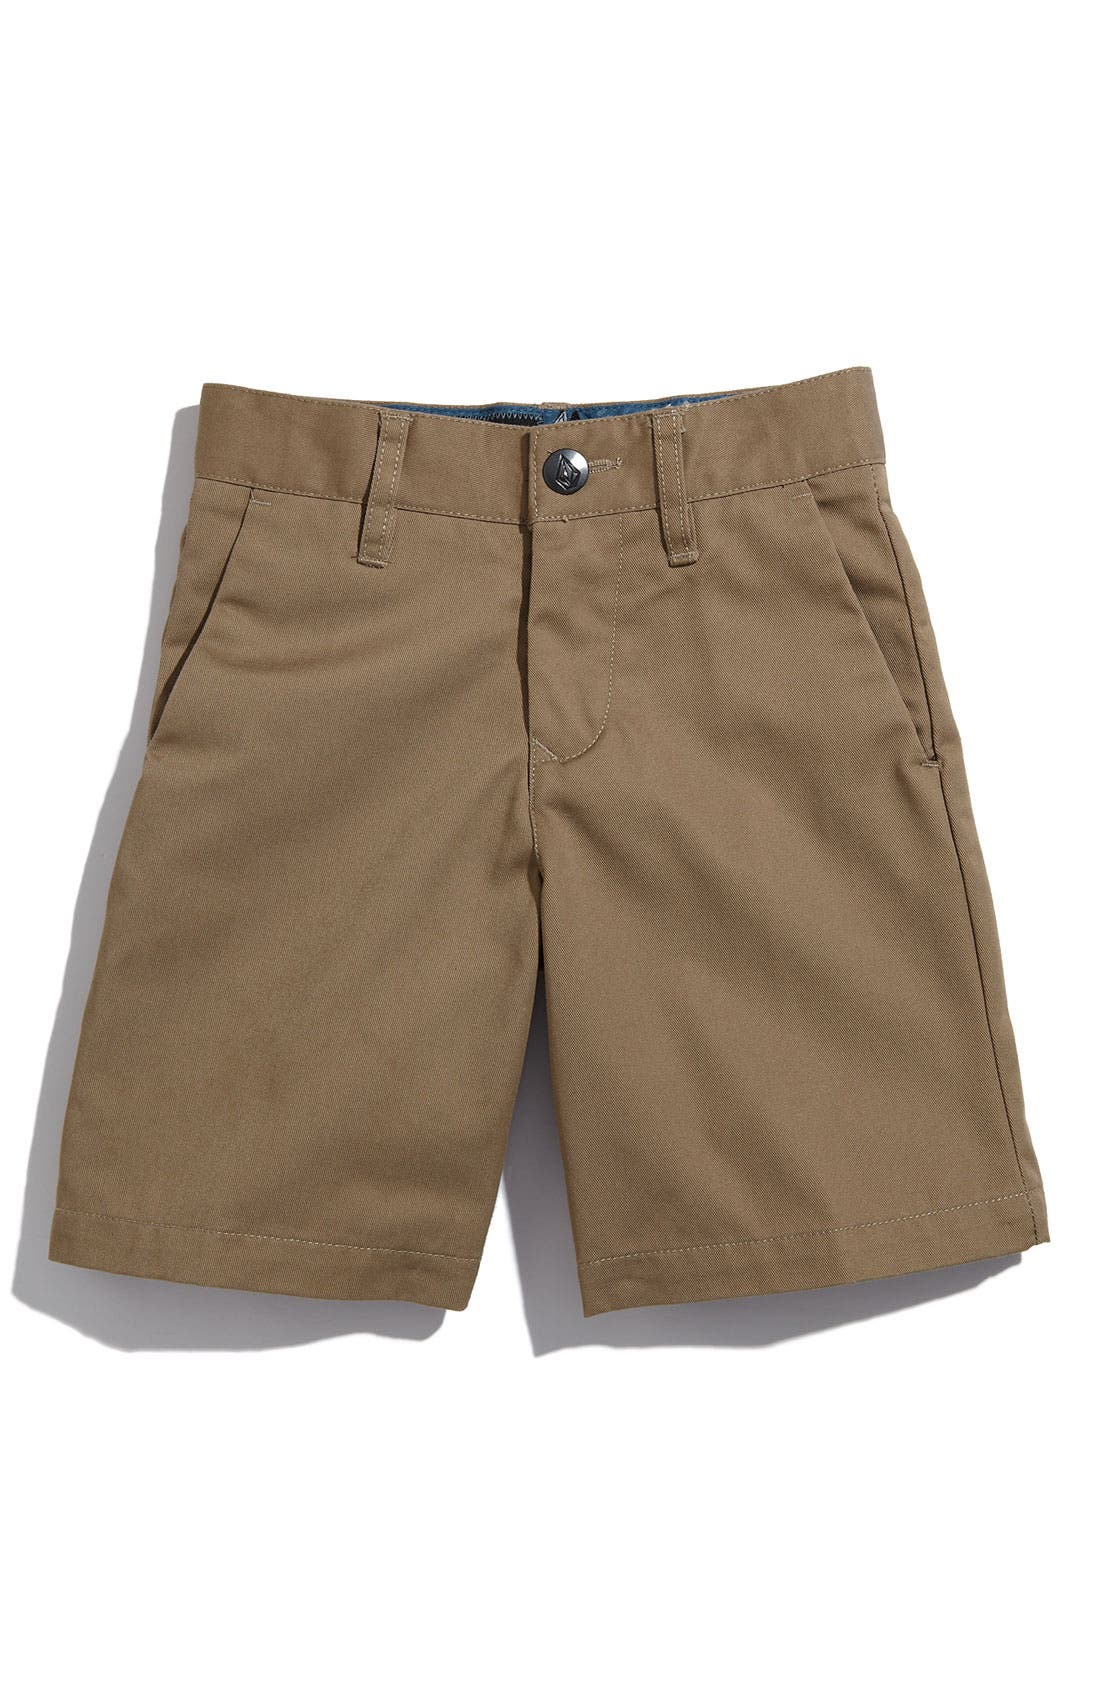 Alternate Image 1 Selected - Volcom 'Modern' Chino Shorts (Little Boys)